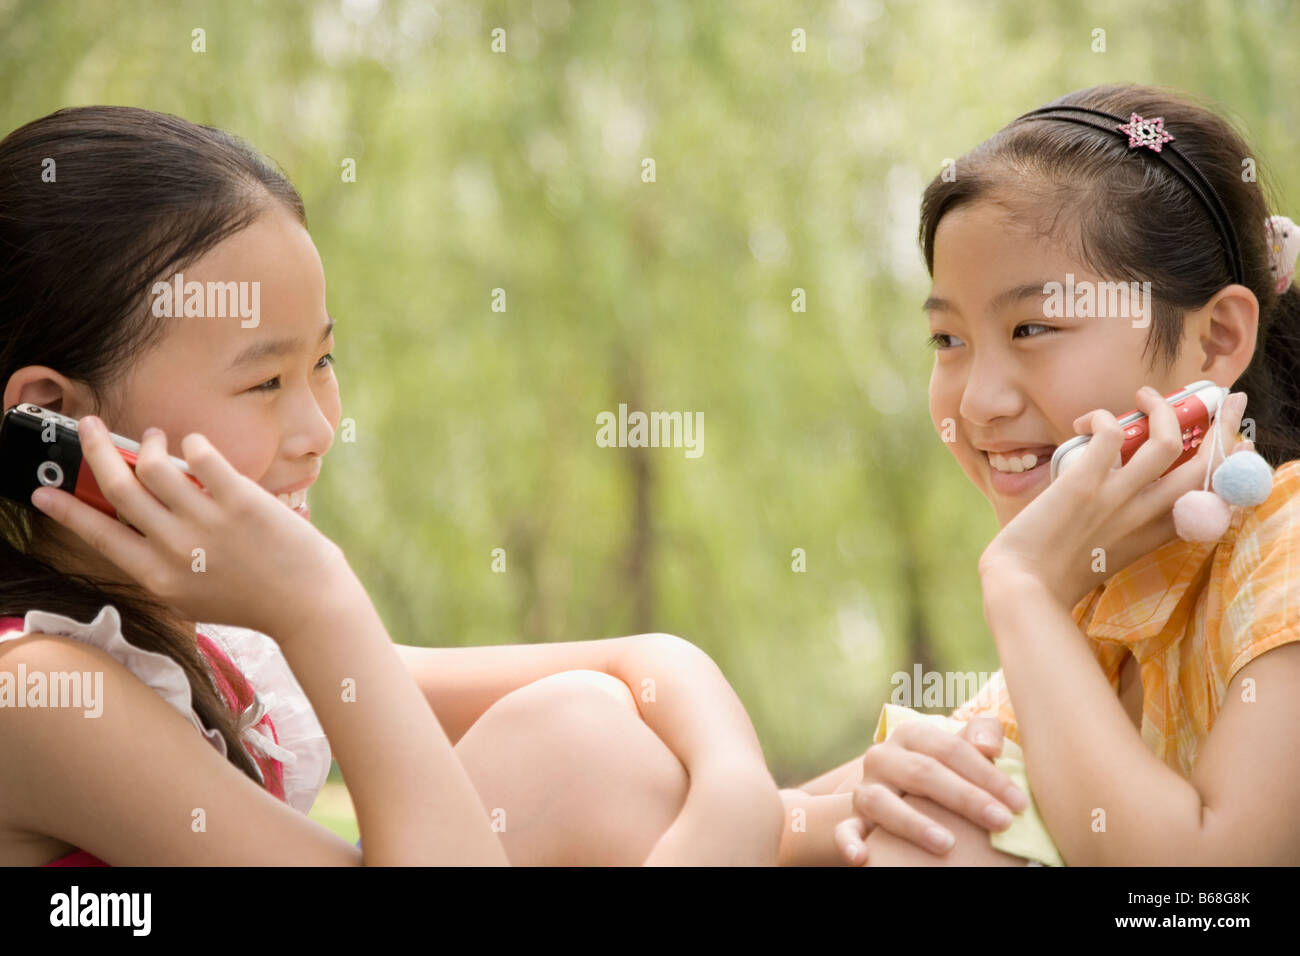 Two girls talking on their mobile phones and smiling Stock Photo